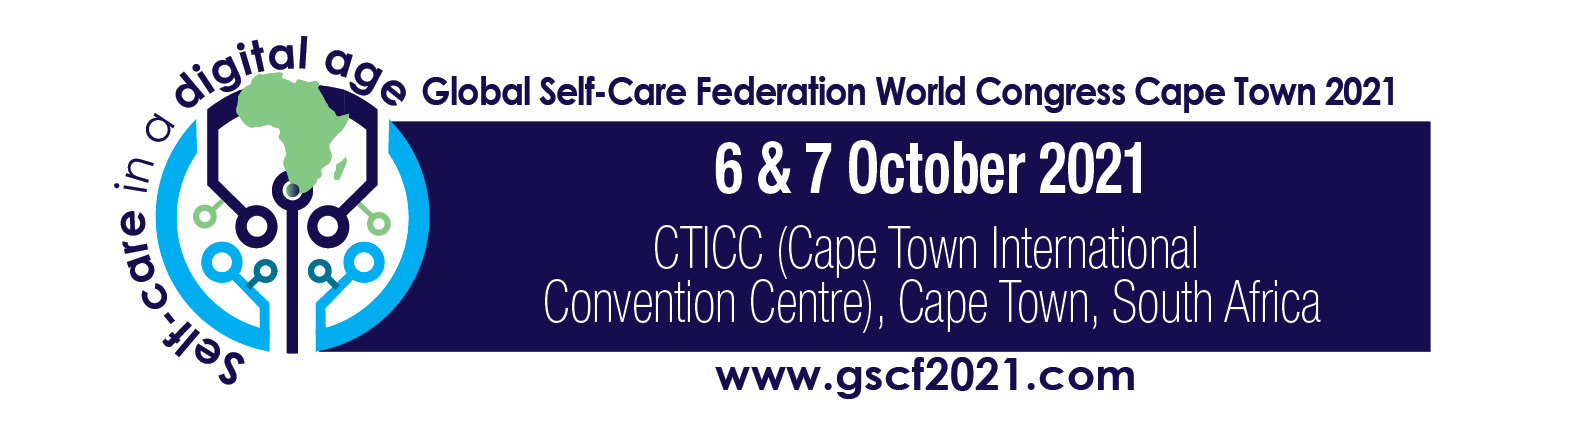 Global Self-Care Federation World Congress 2021